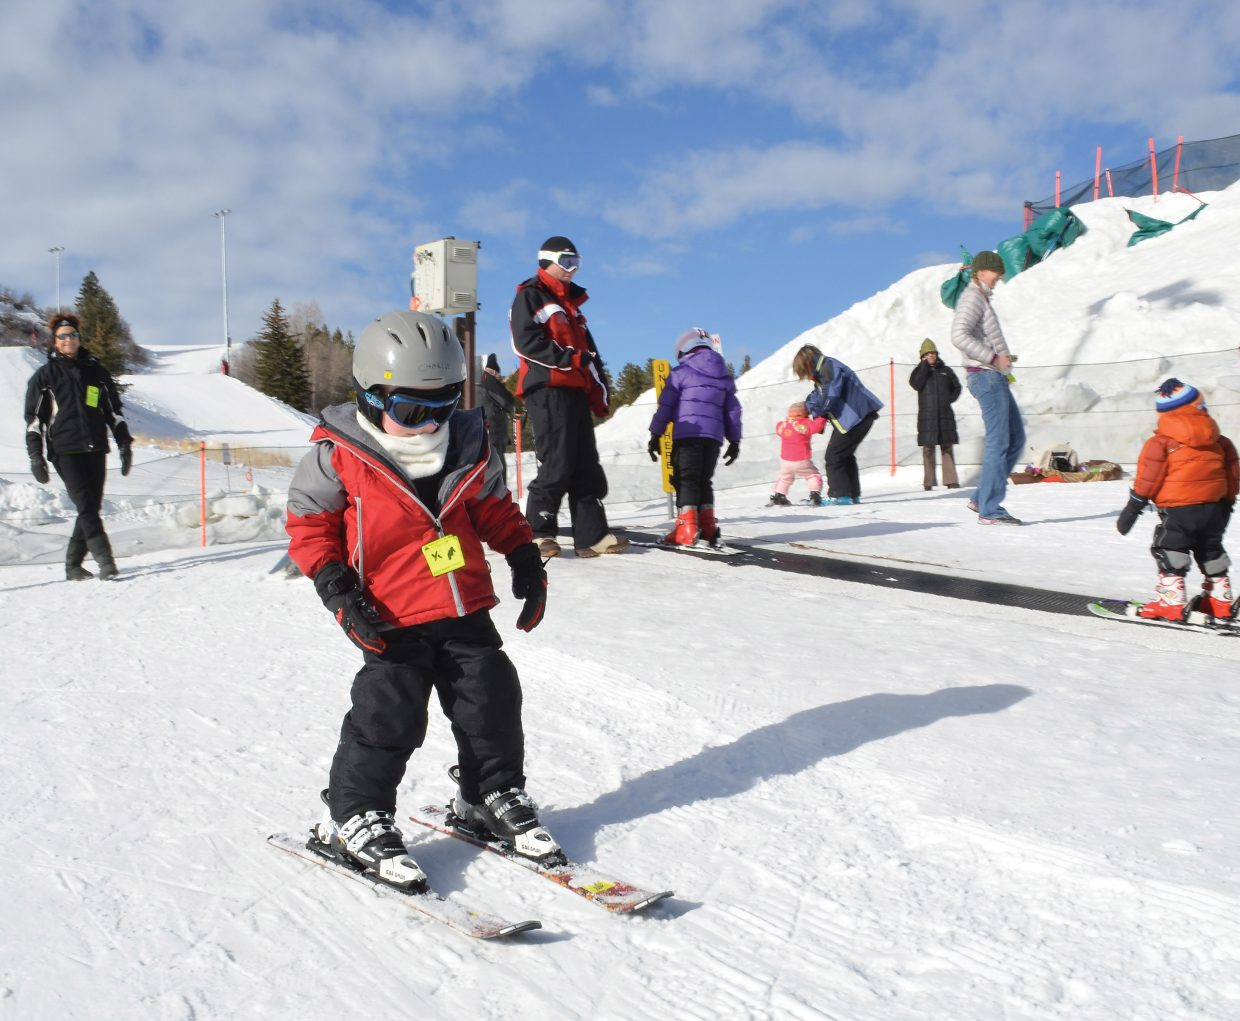 Charlie Wright, 4, was among the youngsters learning to ski on his own two feet at the magic carpet slope at Howelsen Hill on New Year's Day.